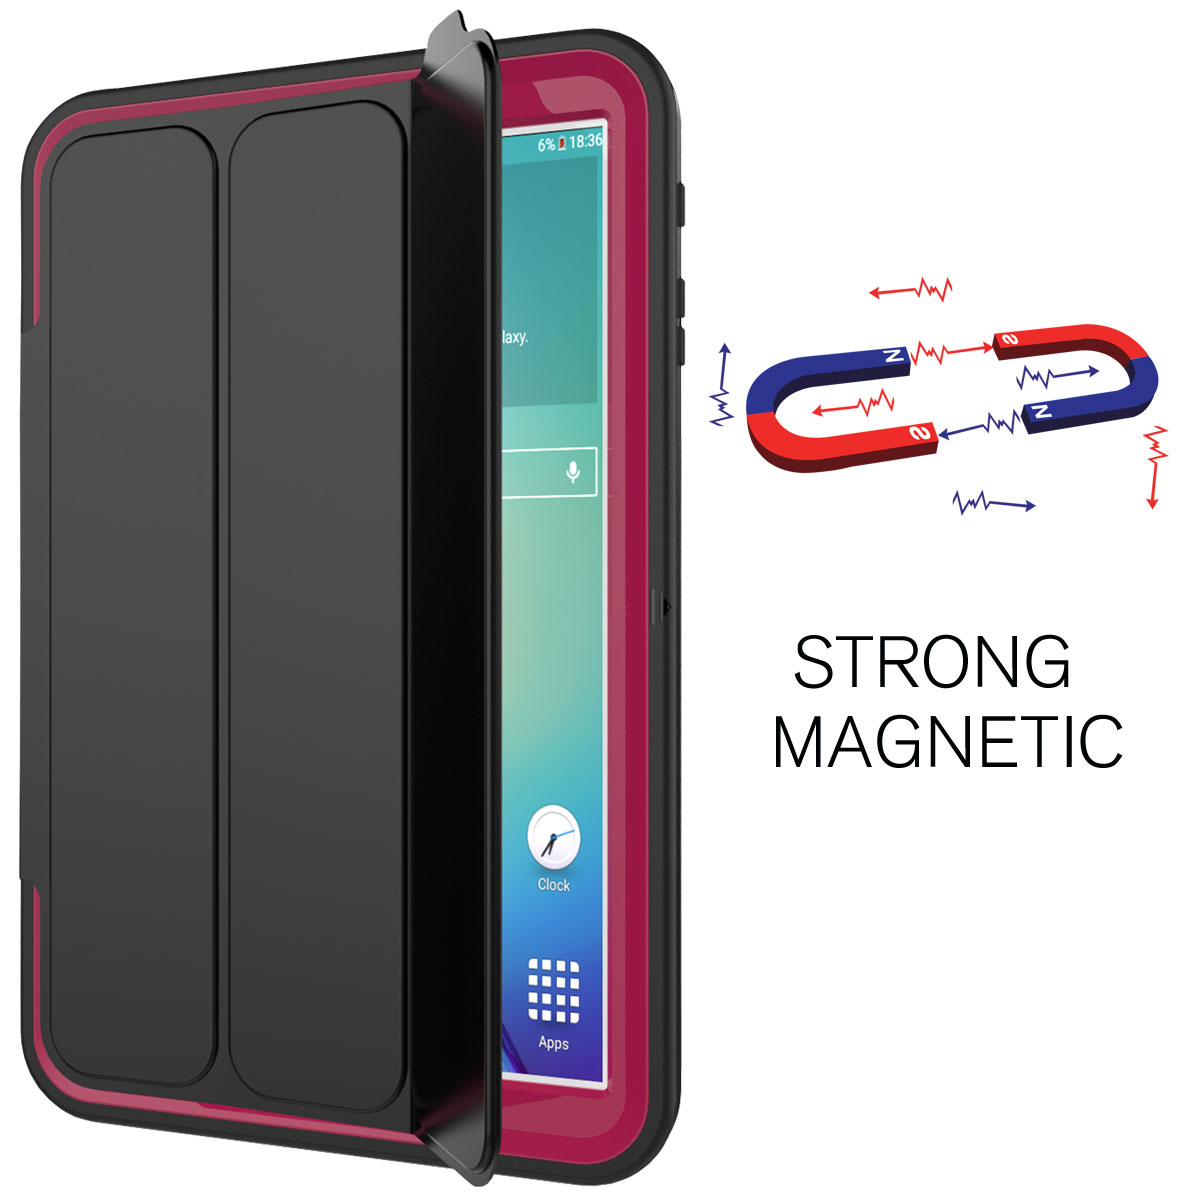 smart shockproof stand hard case screen protector for samsung galaxy tab s2 8 0 ebay. Black Bedroom Furniture Sets. Home Design Ideas